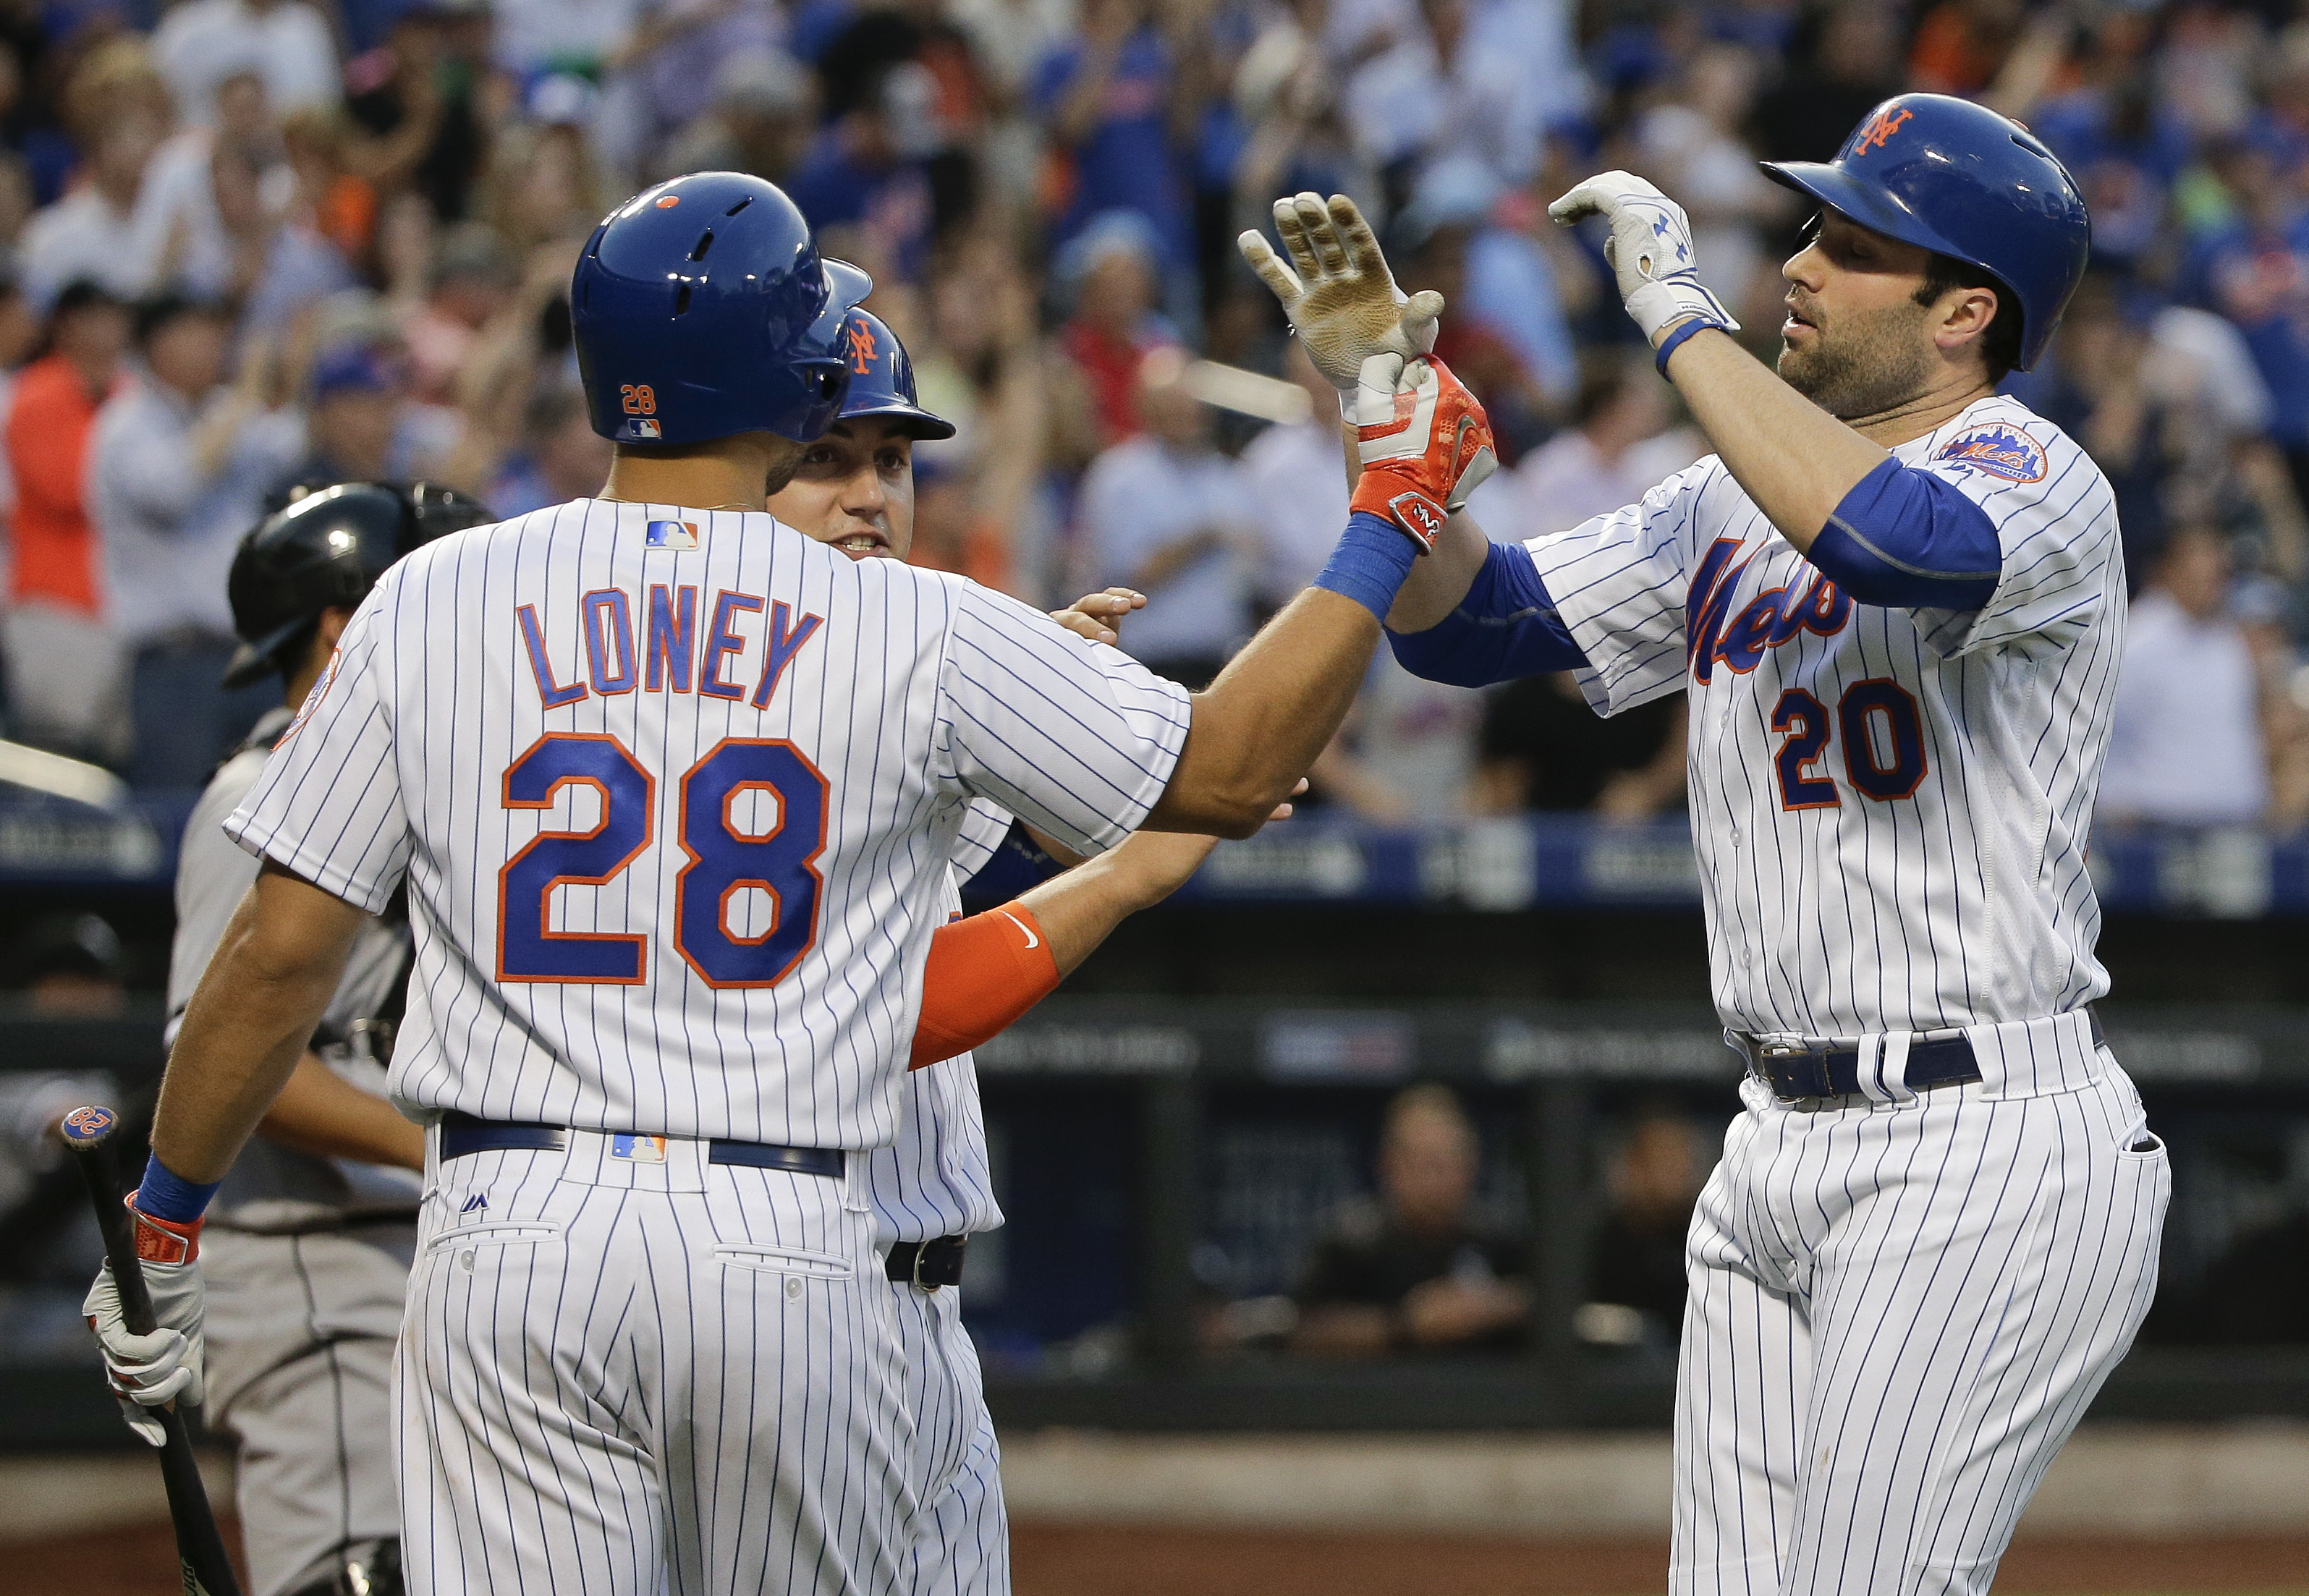 New York Mets' Neil Walker (20) is greeted at home plate by James Loney (28) and Michael Conforto after hitting a two-run home run against the Chicago White Sox during the third inning of a baseball game, Tuesday, May 31, 2016, in New York. (AP Photo/Juli